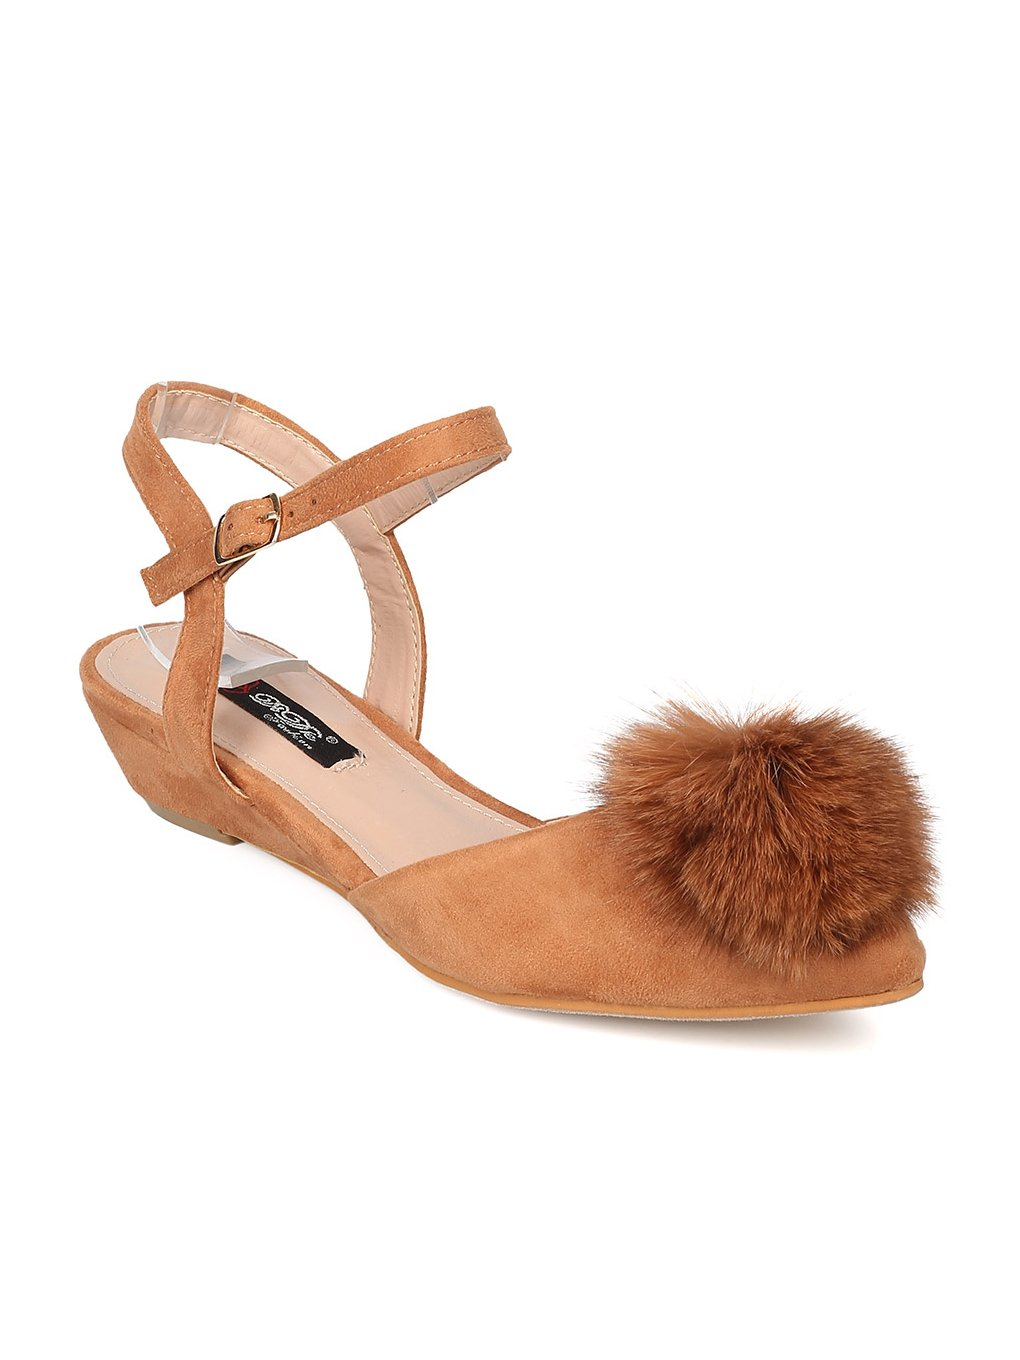 DbDk Women Mixed Media Pom Pom Dorsay Low Wedge Sandal GD39 B01MTGIUMW 8 M US|Camel